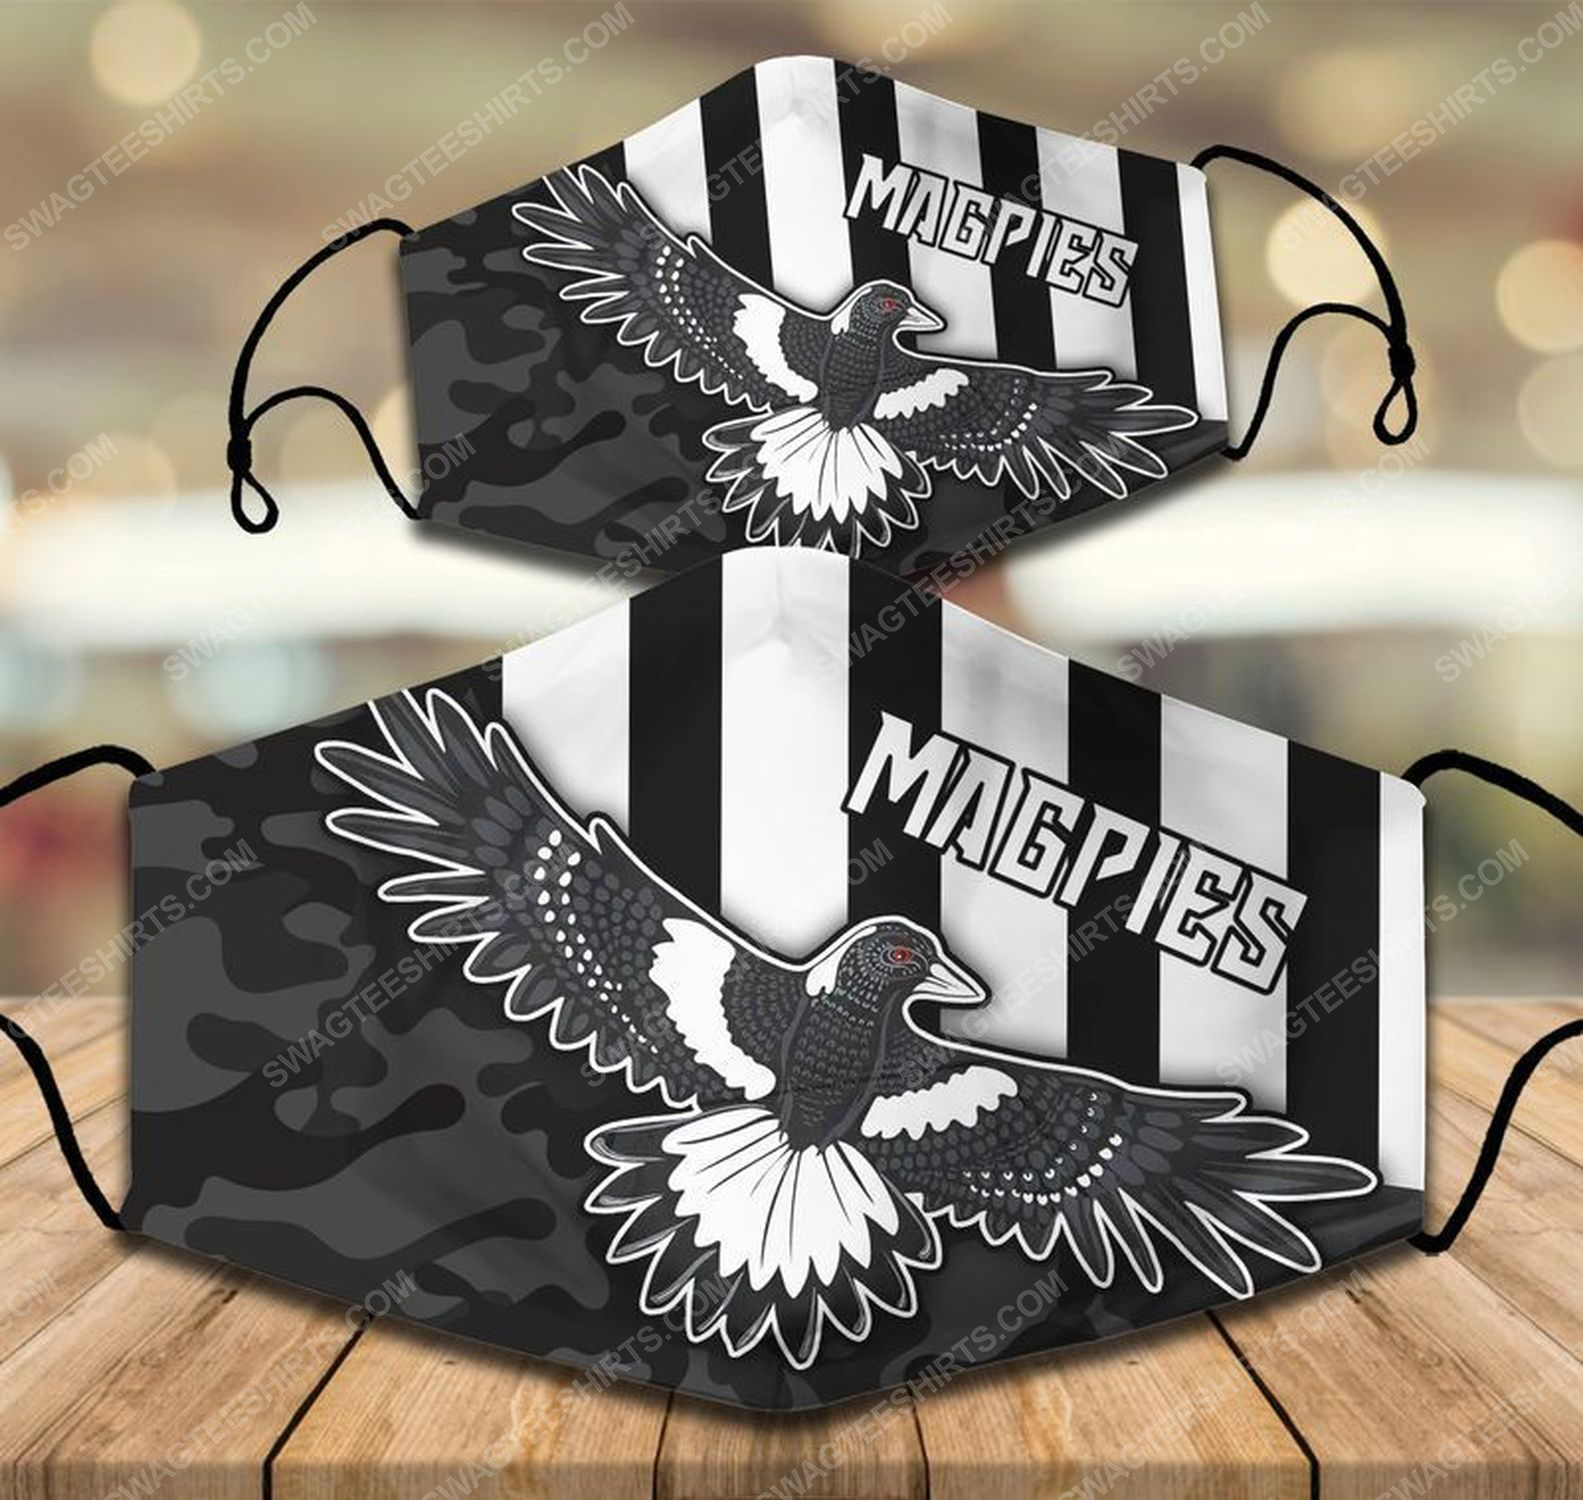 Football club collingwood magpies all over print face mask